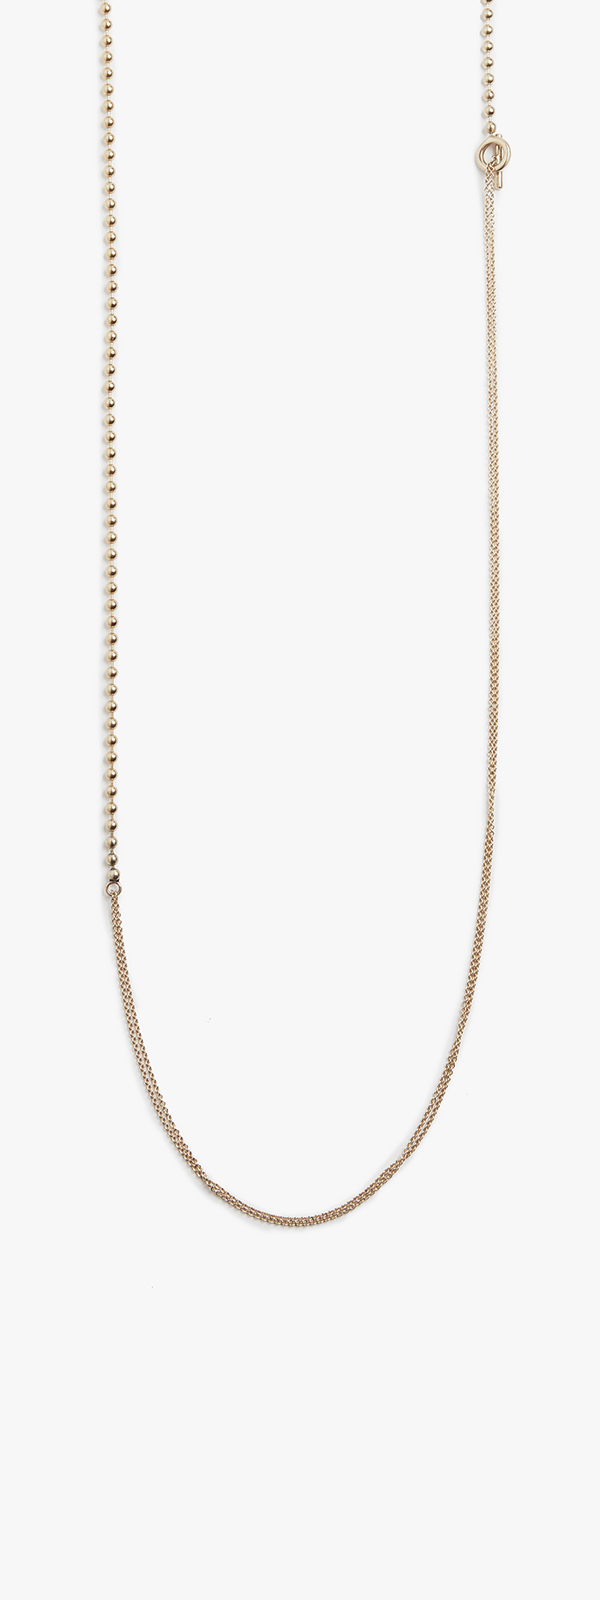 Image of 18k Yellow Gold Ball Chain to Micro Cable Chain Necklace